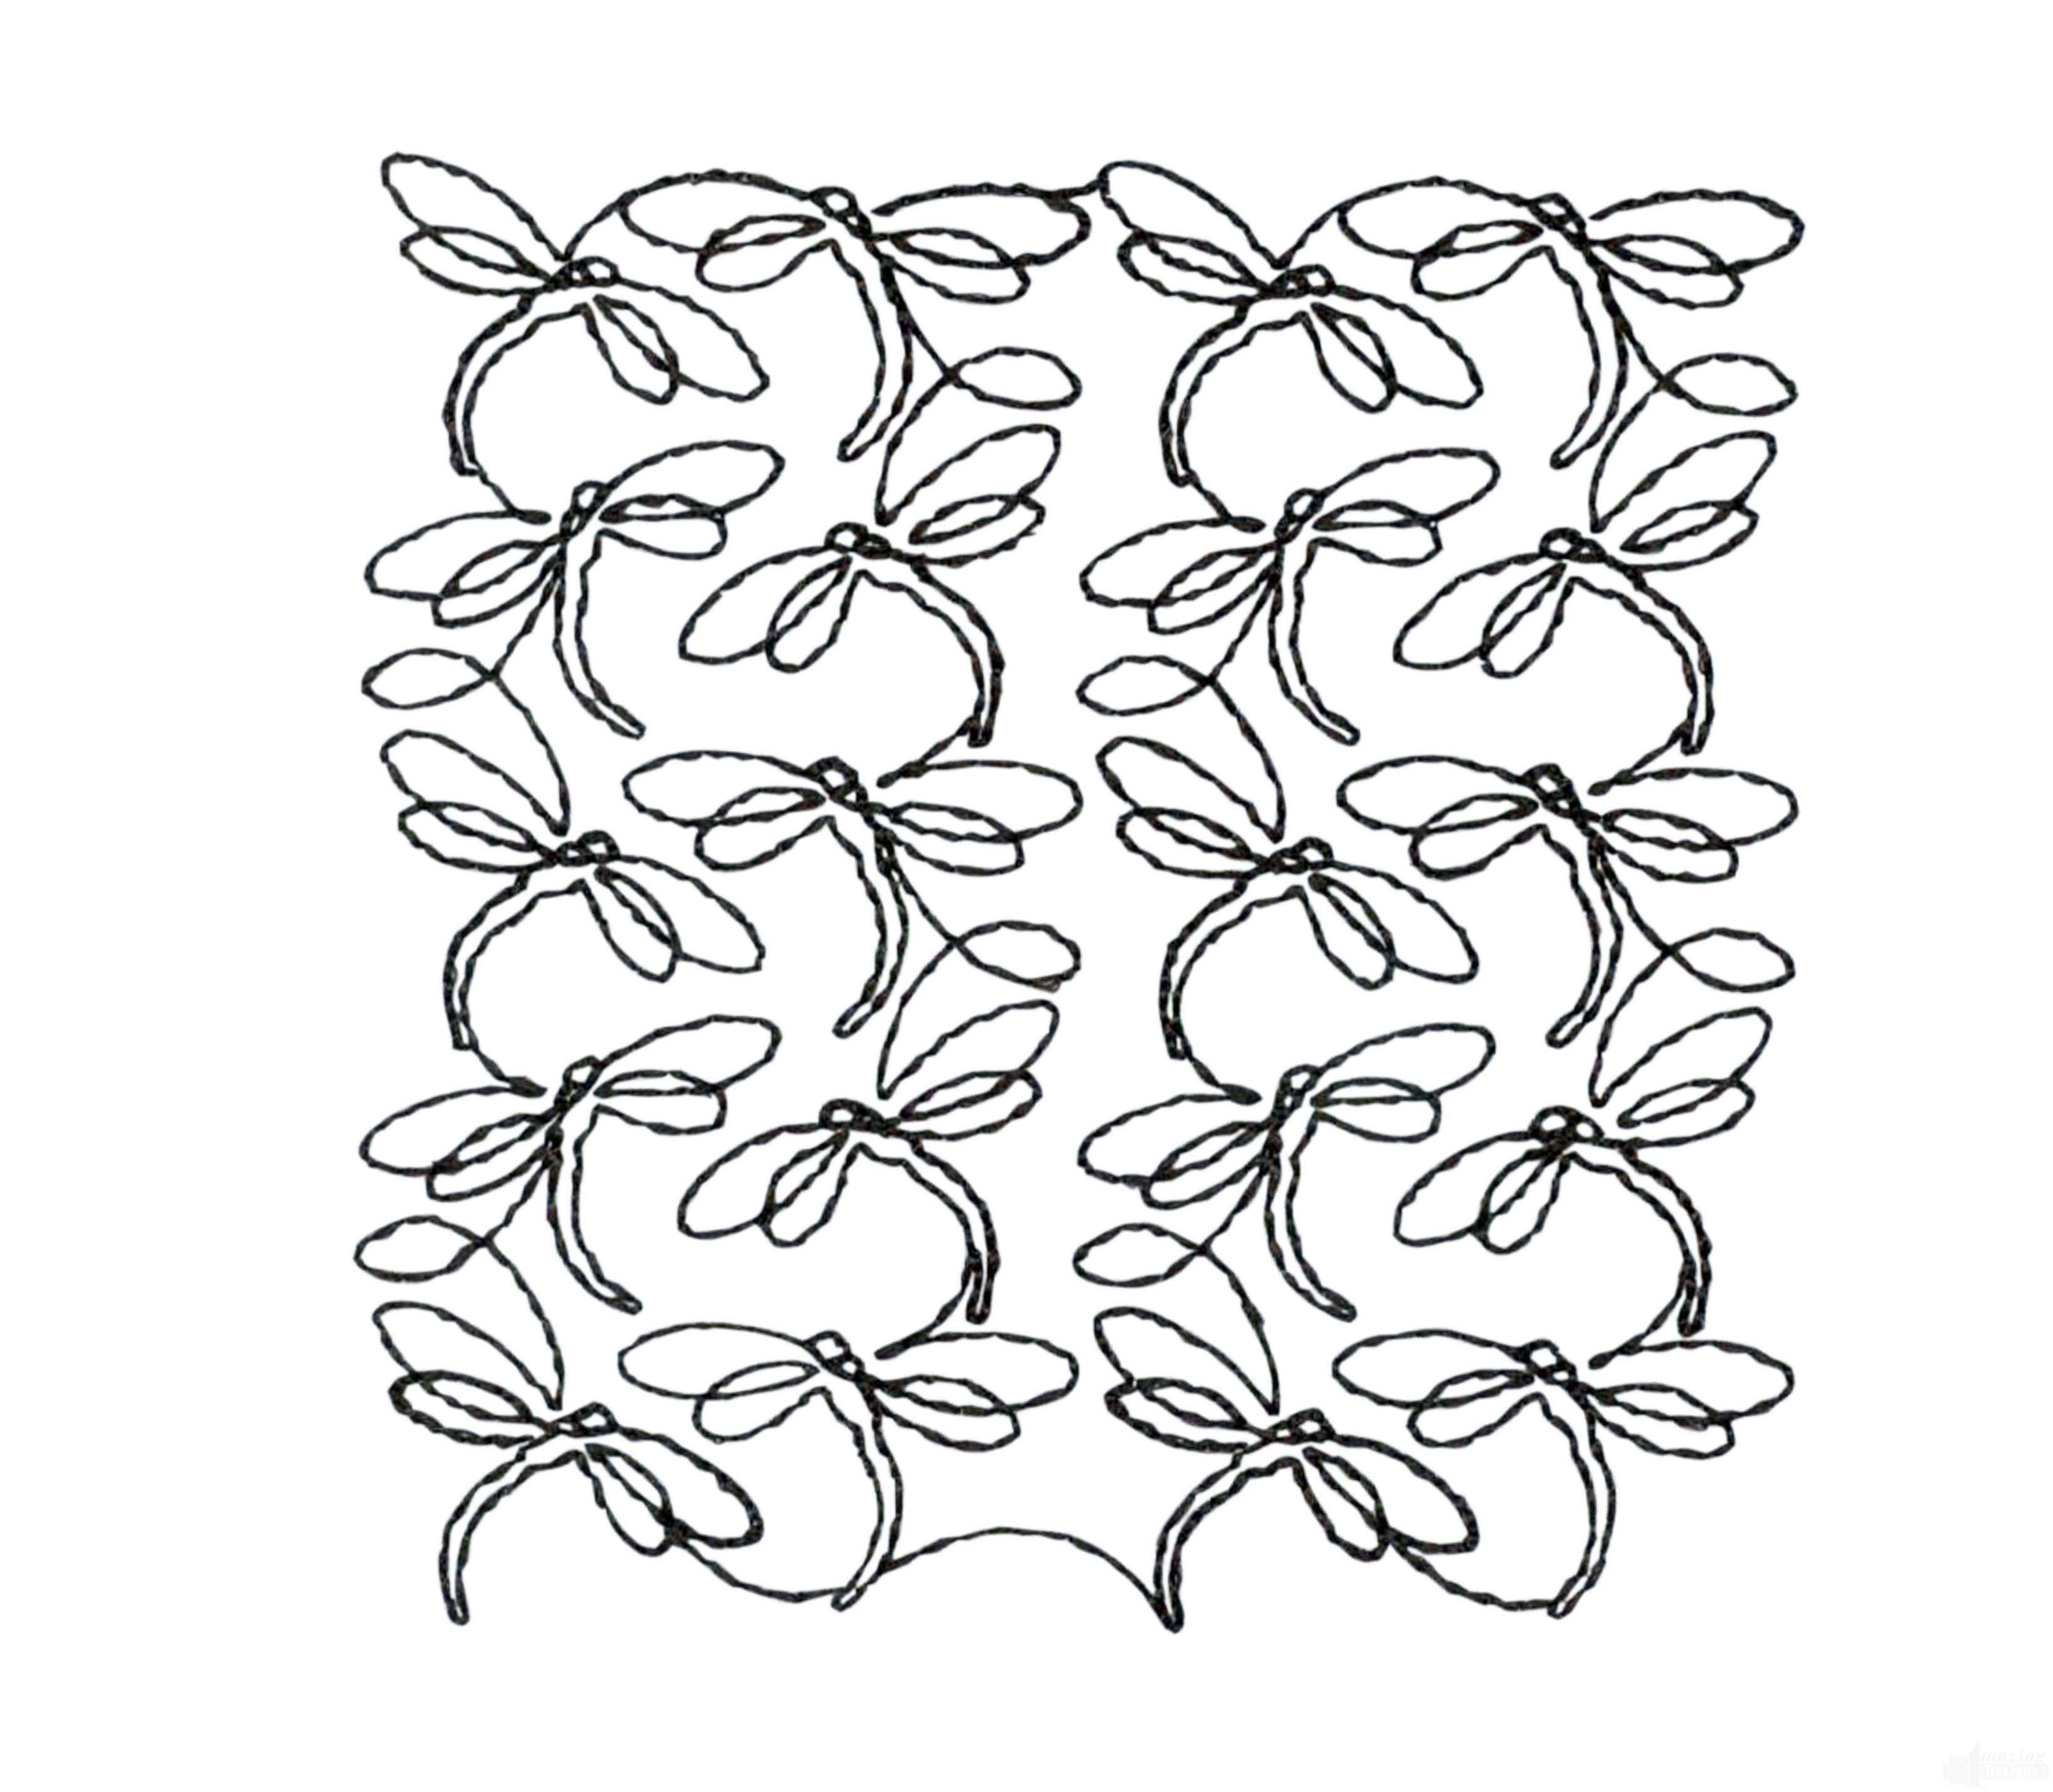 Quilting Outline Embroidery Designs : Creative Quilting Outlines Flora and Fauna Embroidery Design